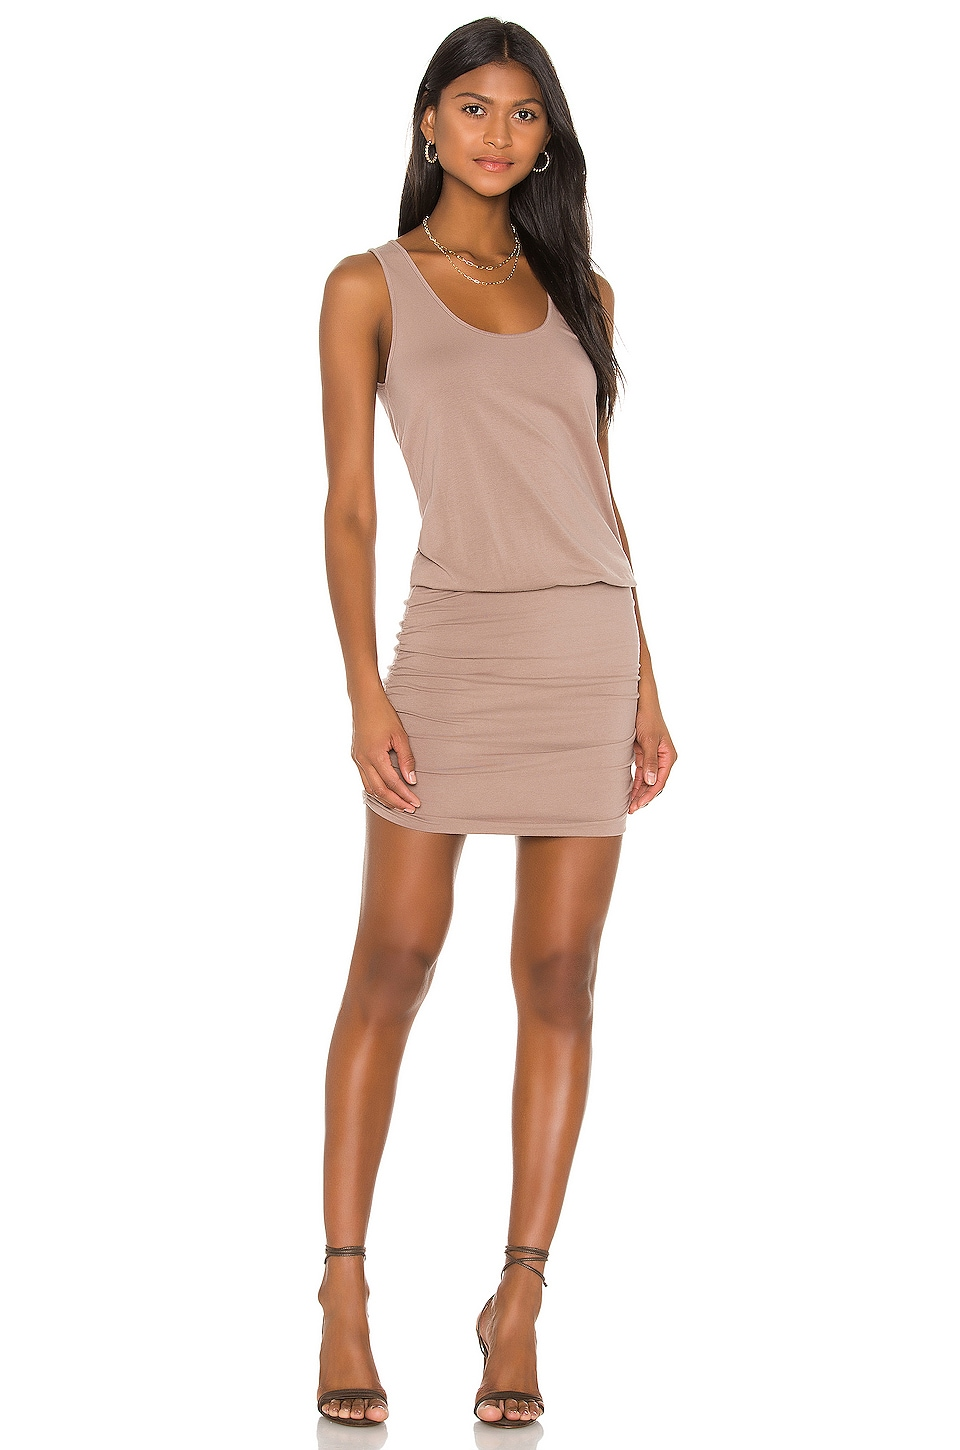 Draped Modal Jersey Mini Dress             Bobi                                                                                                       CA$ 90.97 14